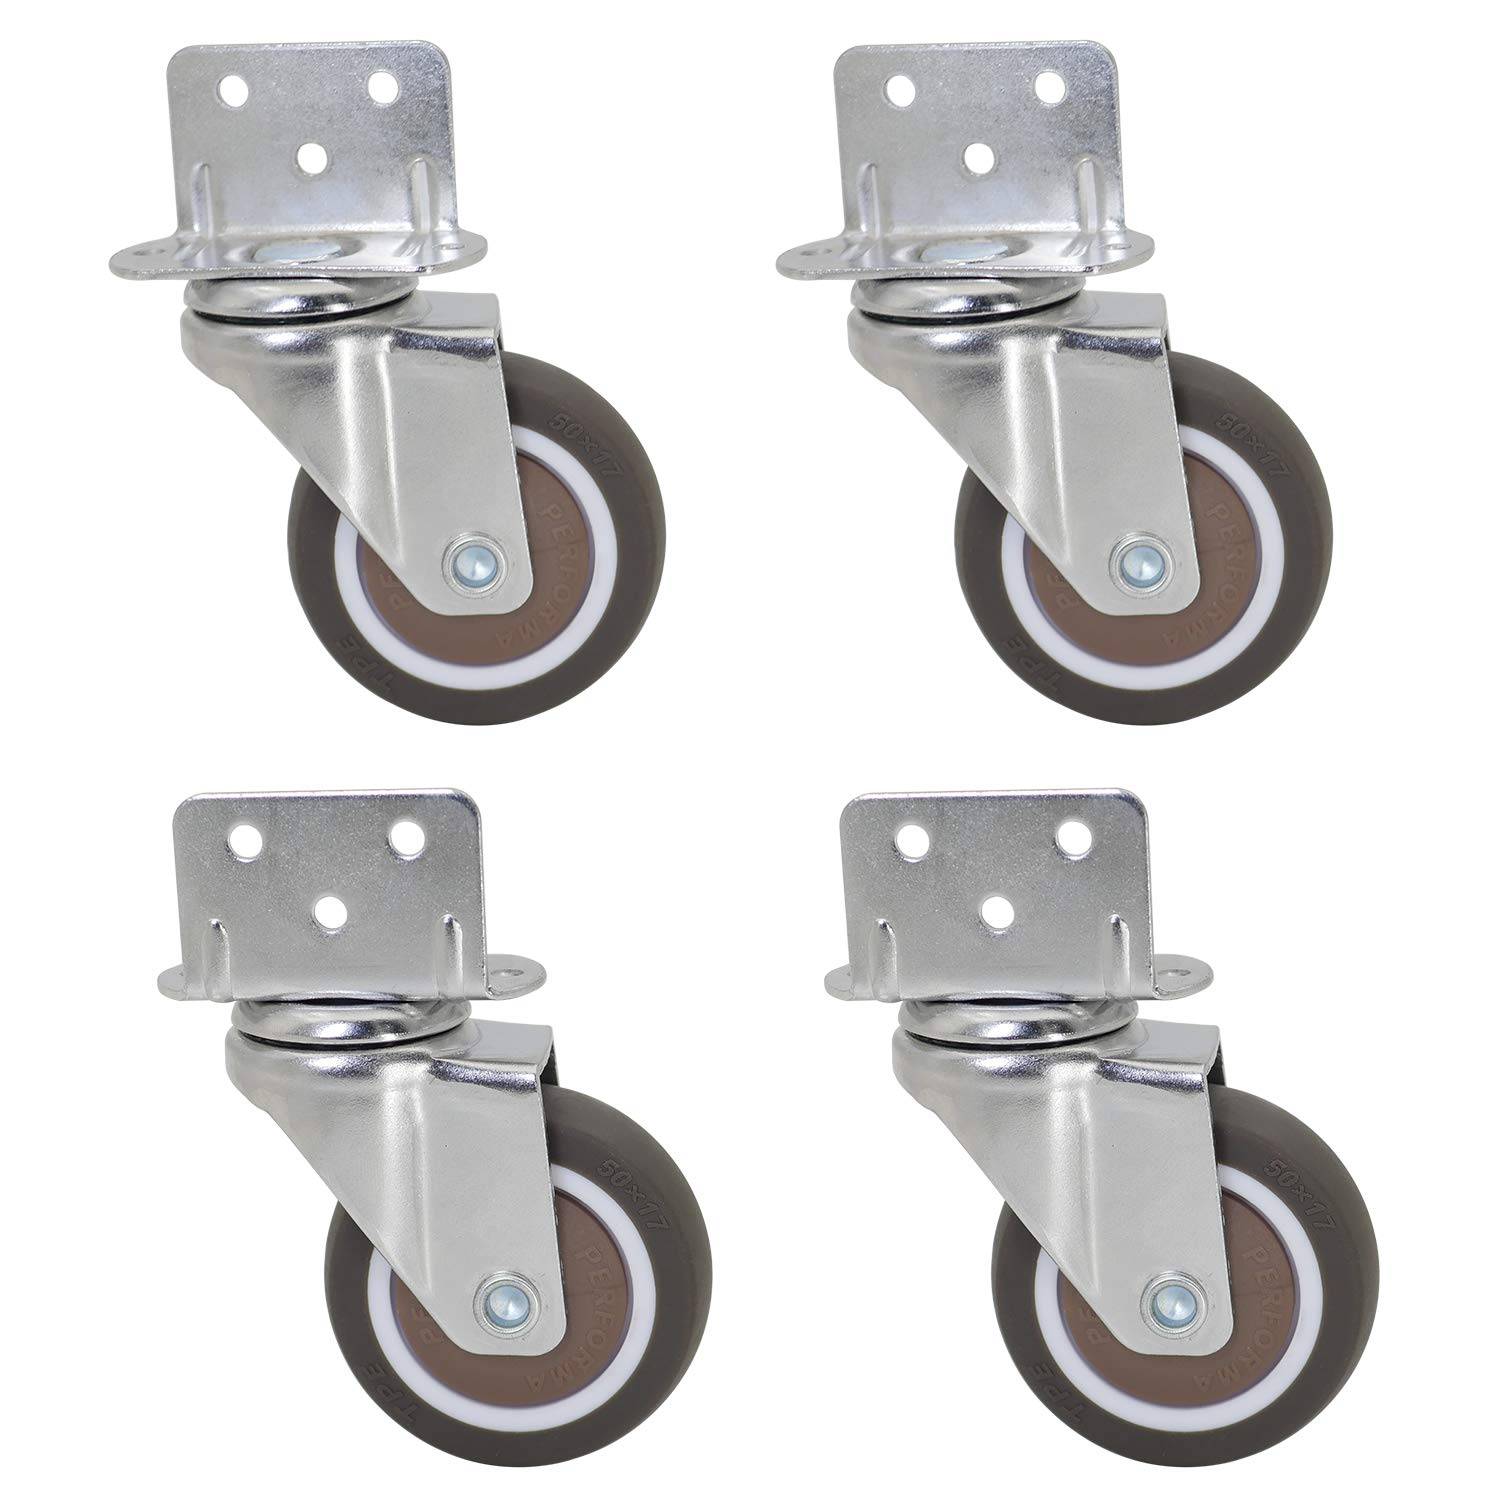 4 Pack Total Load Capacity 190Lbs//87Kg for Narrow Install Place of Furniture Dr.Luck 2 Inch L-Shaped Plate Swivel Caster Ball Bearing L-Clip Side Mount Plate Thermoplastic Rubber Wheel Metal Housing